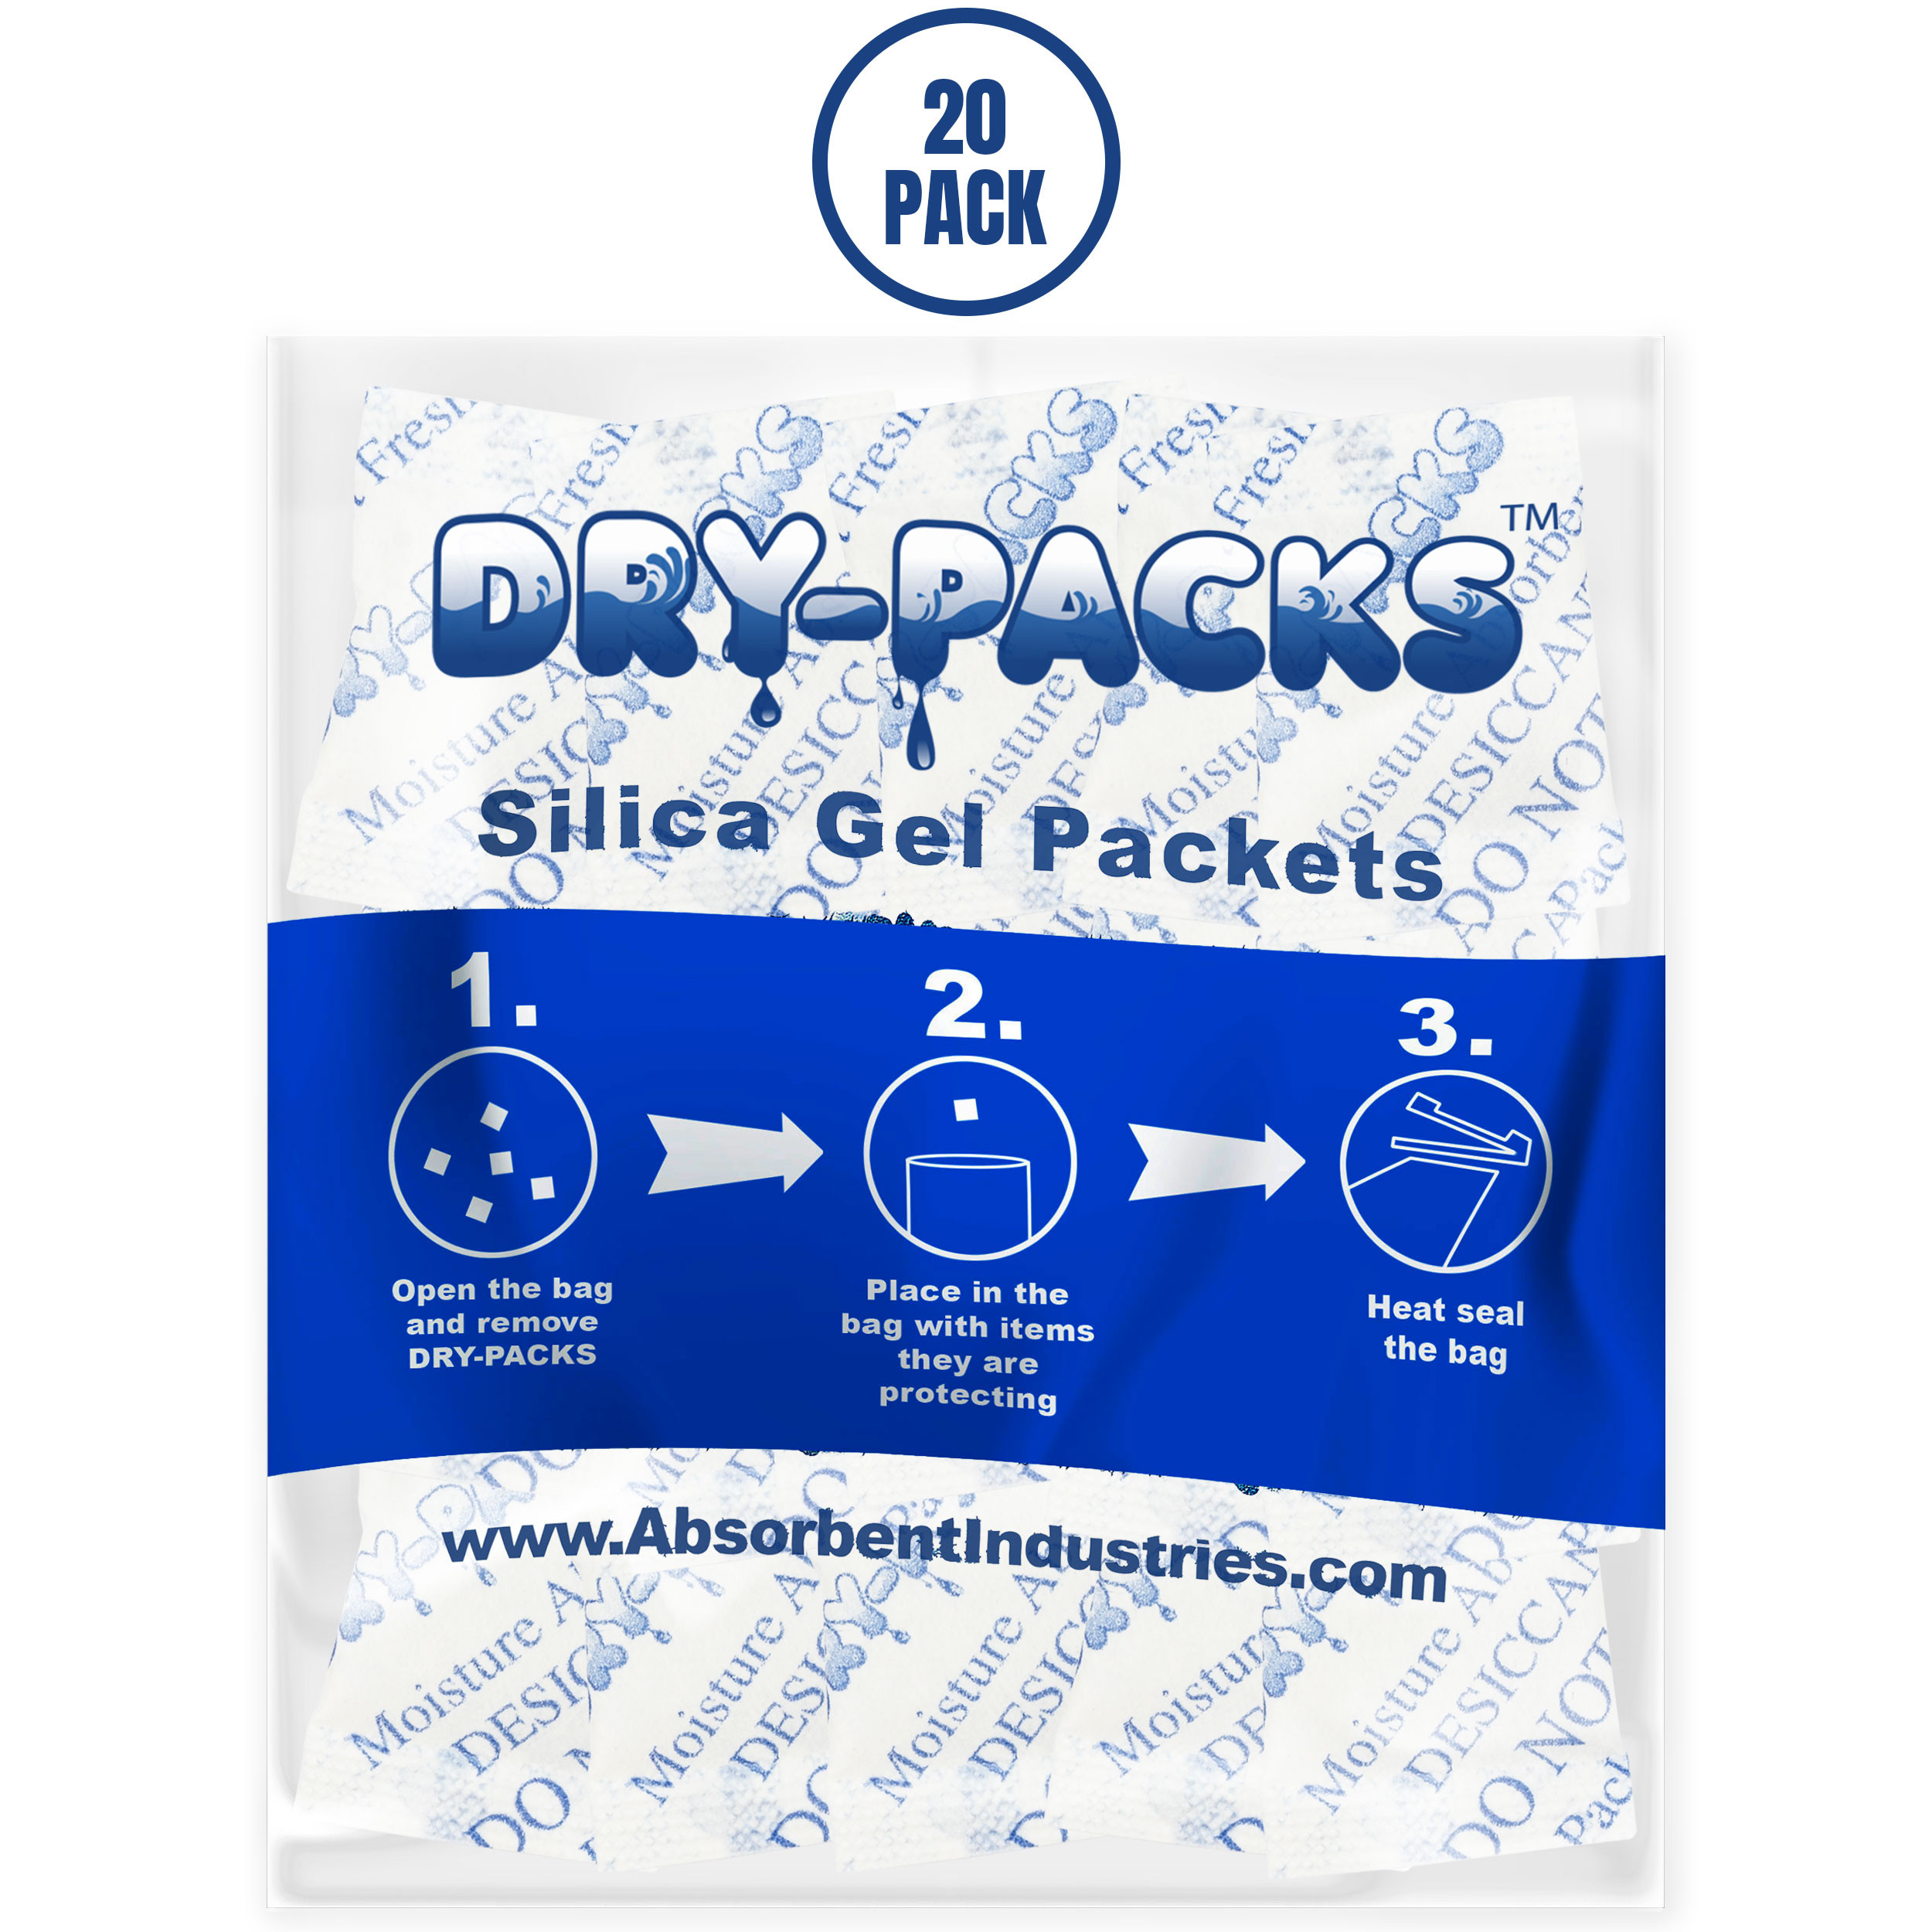 Dry-Packs Industries Silica Gel in Cotton Dehumidifier Absorbs Moisture 1/2 Gram 20PK, 20-Pack